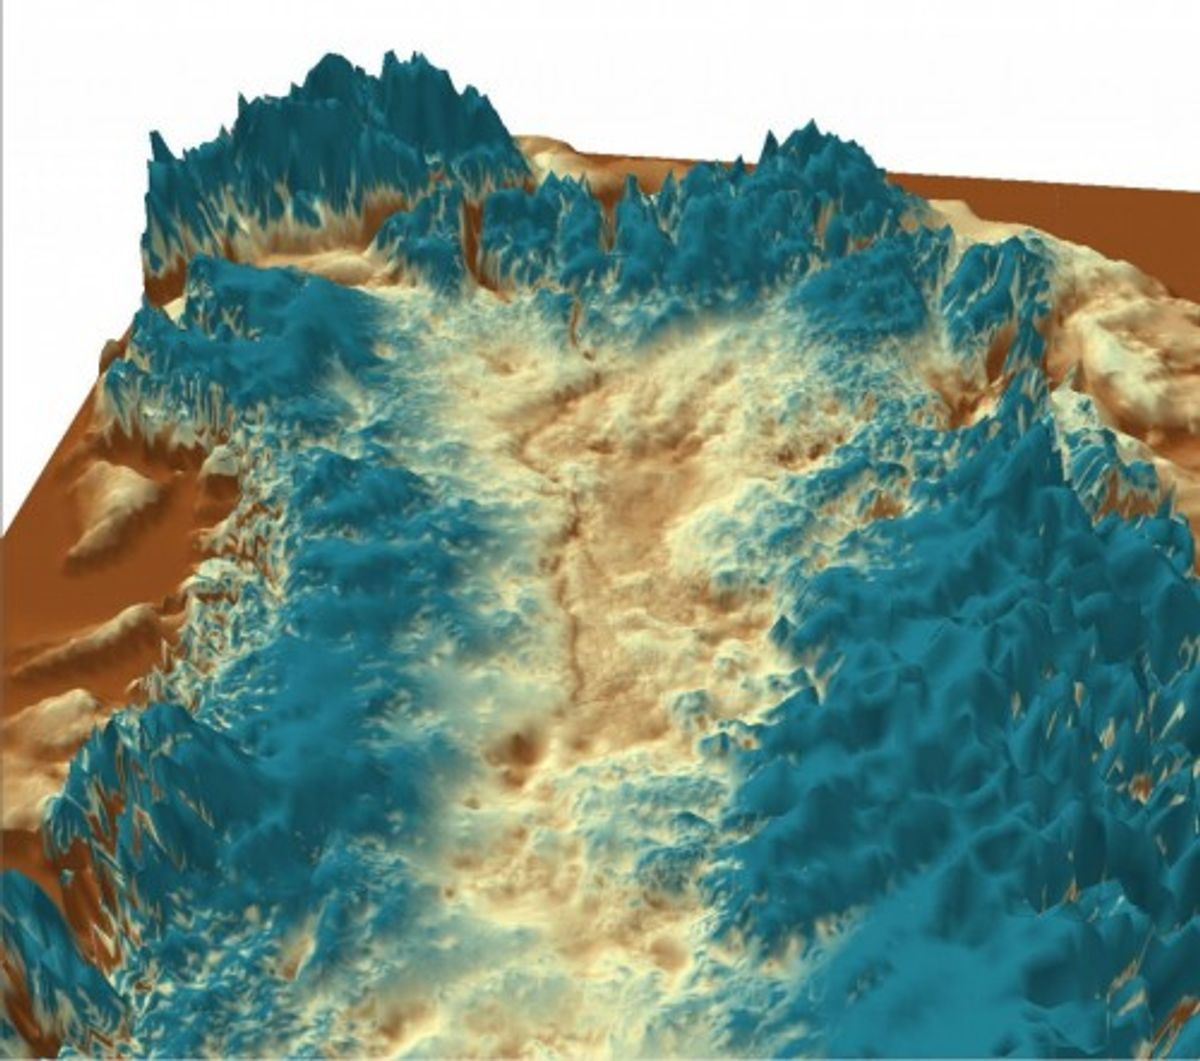 A 3-D rendering of the canyon buried under Greenland's ice sheet (J. Bamber, University of Bristol)